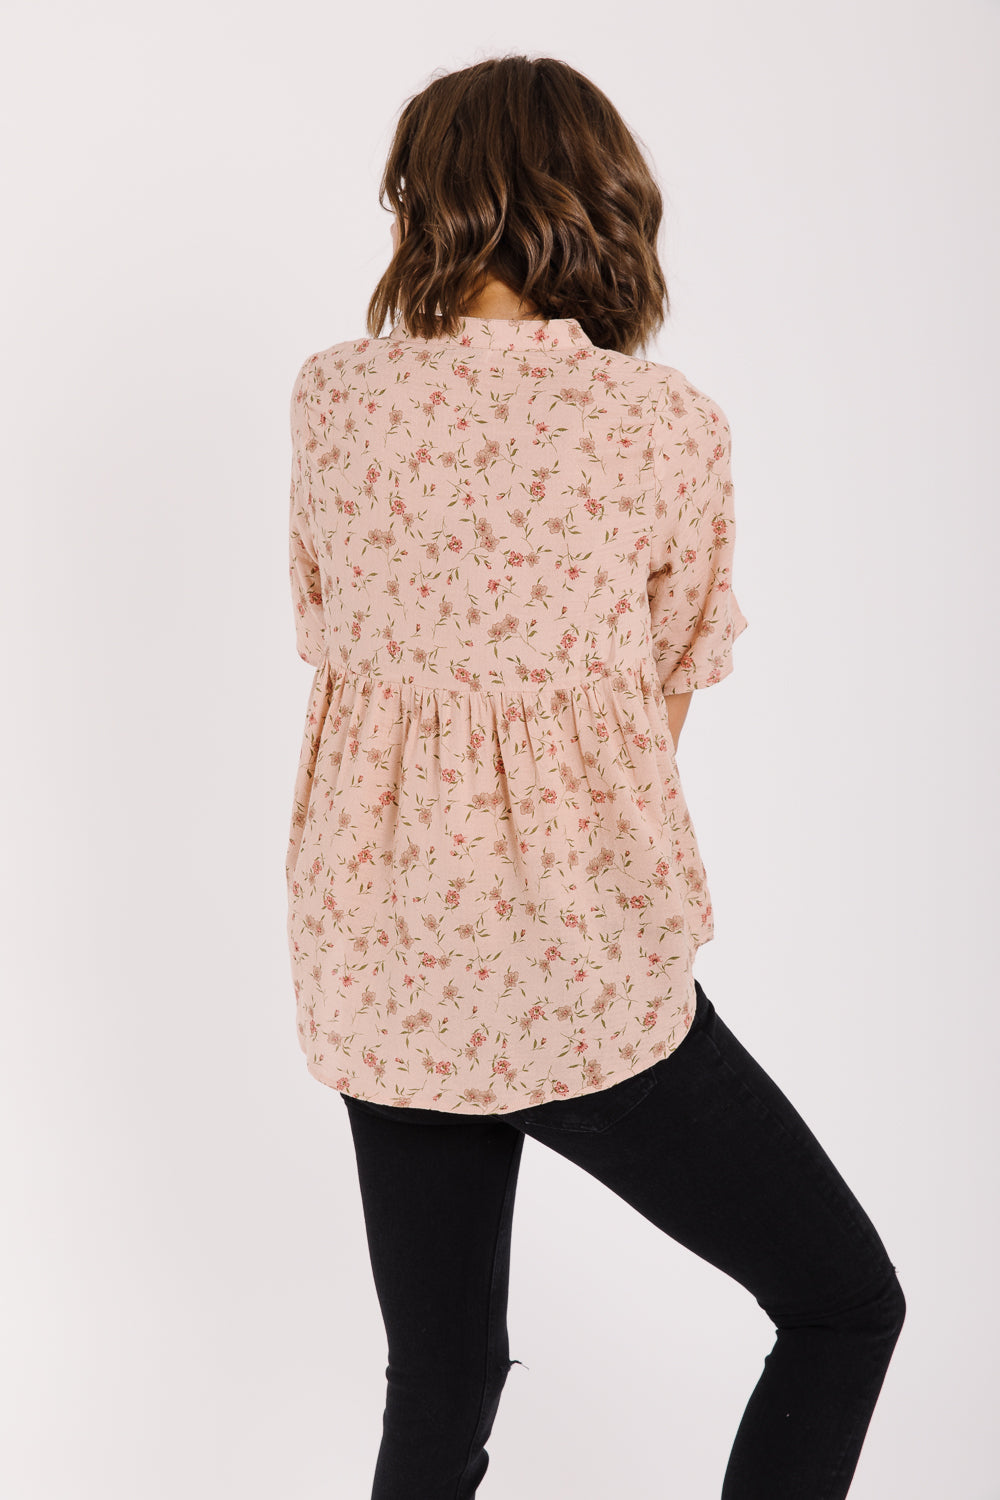 The Dietrich Floral Peplum in Peach